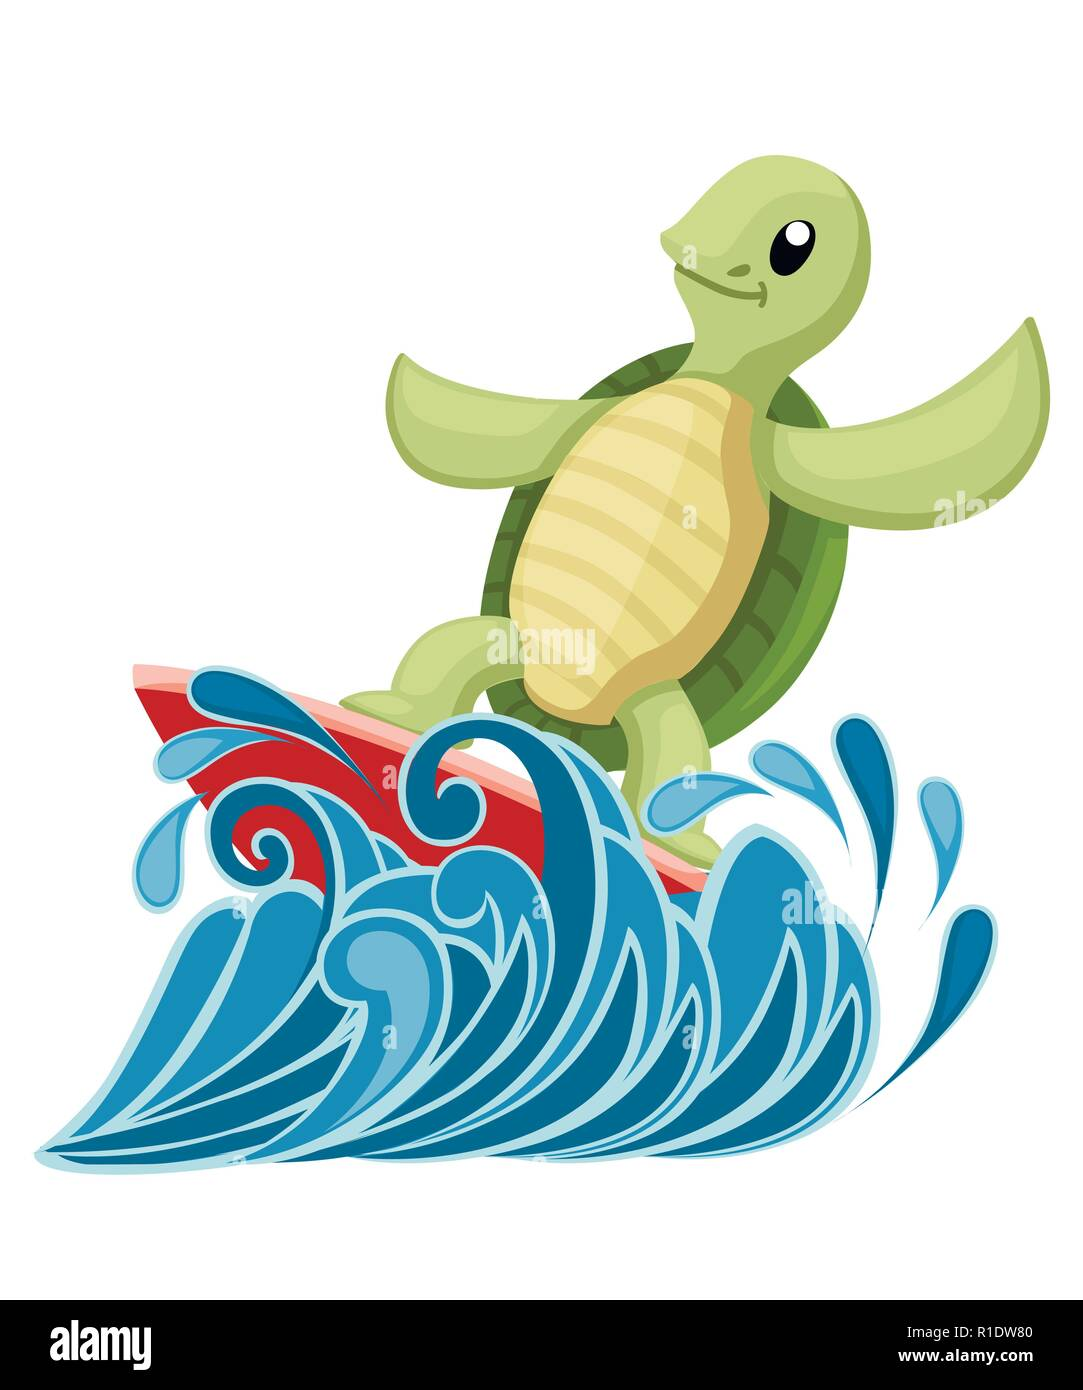 Happy cute turtle on surfboard. Turtle on water. Cartoon character design. Flat vector illustration isolated on white background with ocean or sea wav - Stock Vector